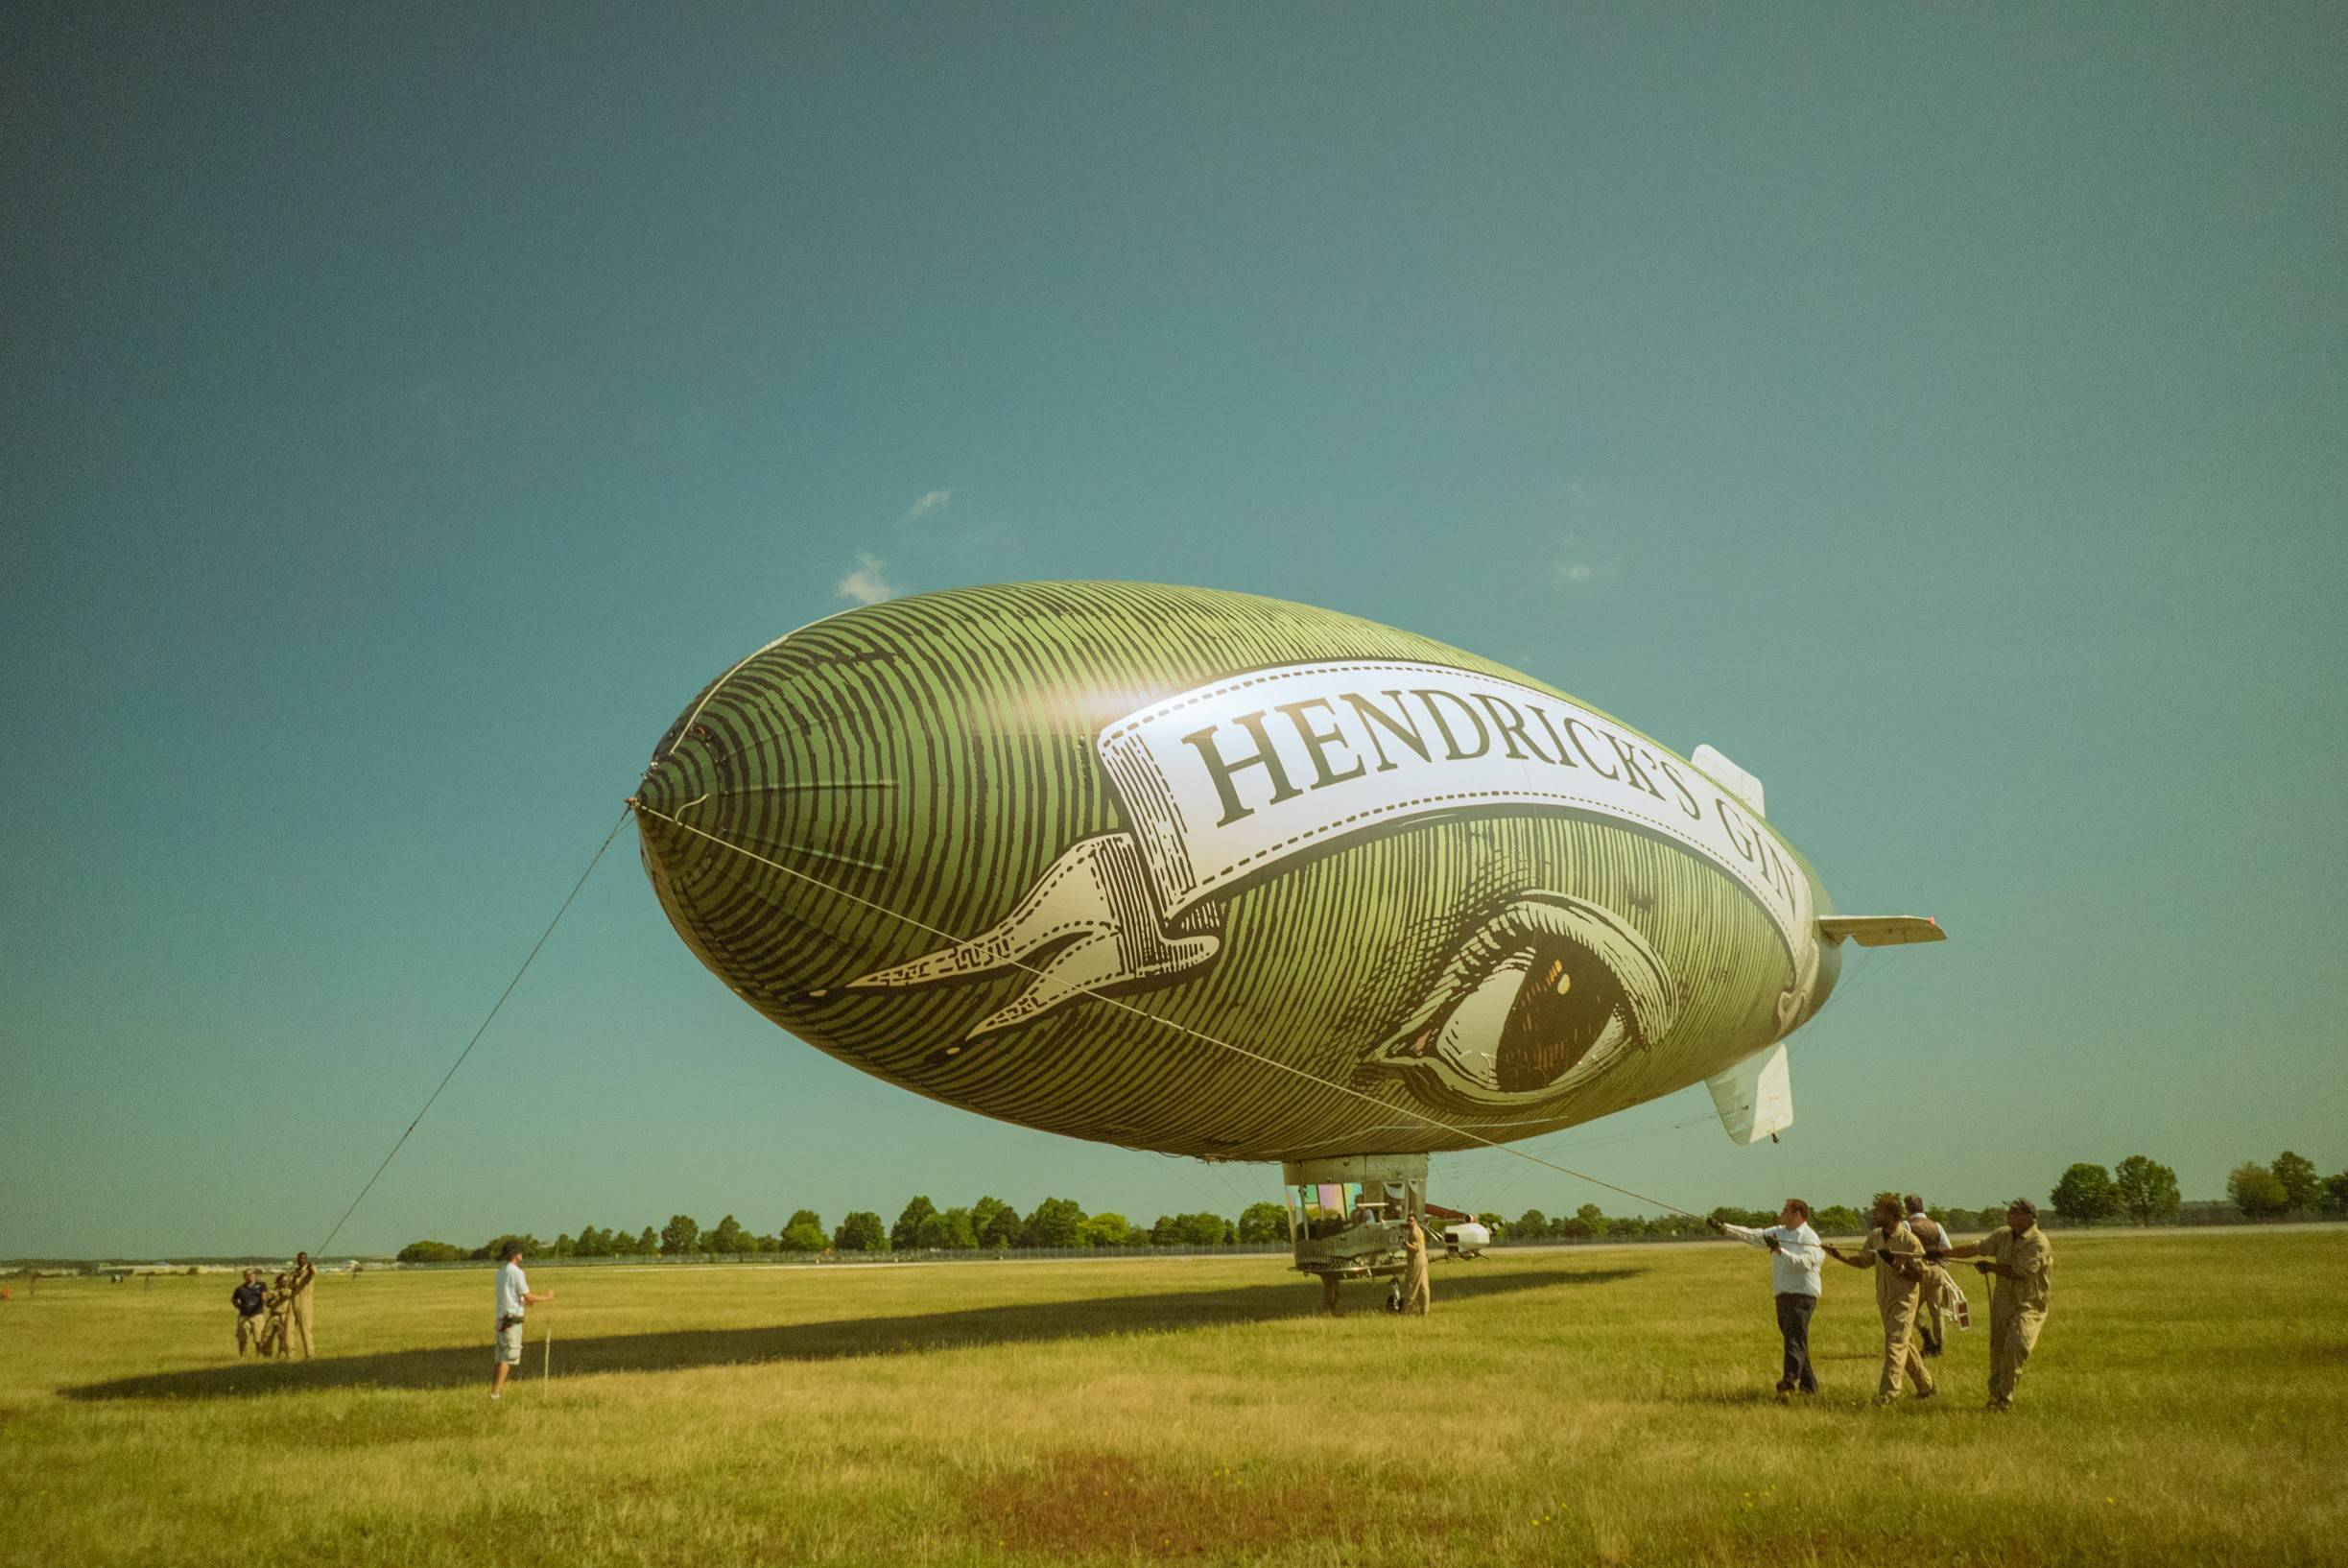 The Flying Cucumber, a blimp sponsored by Hendrick's Gin, will be an unusual sight in the skies Friday over DuPage County as it makes several flights from DuPage Airport in West Chicago.